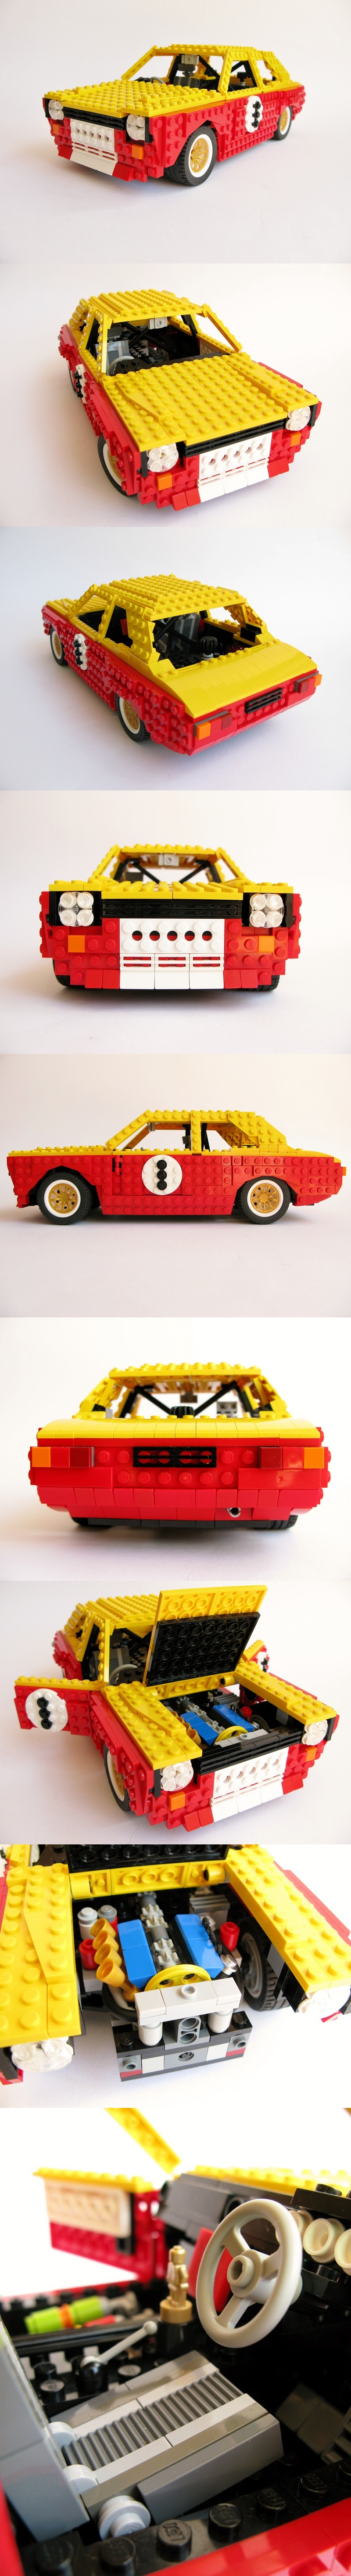 Pin On Lego Vehicles